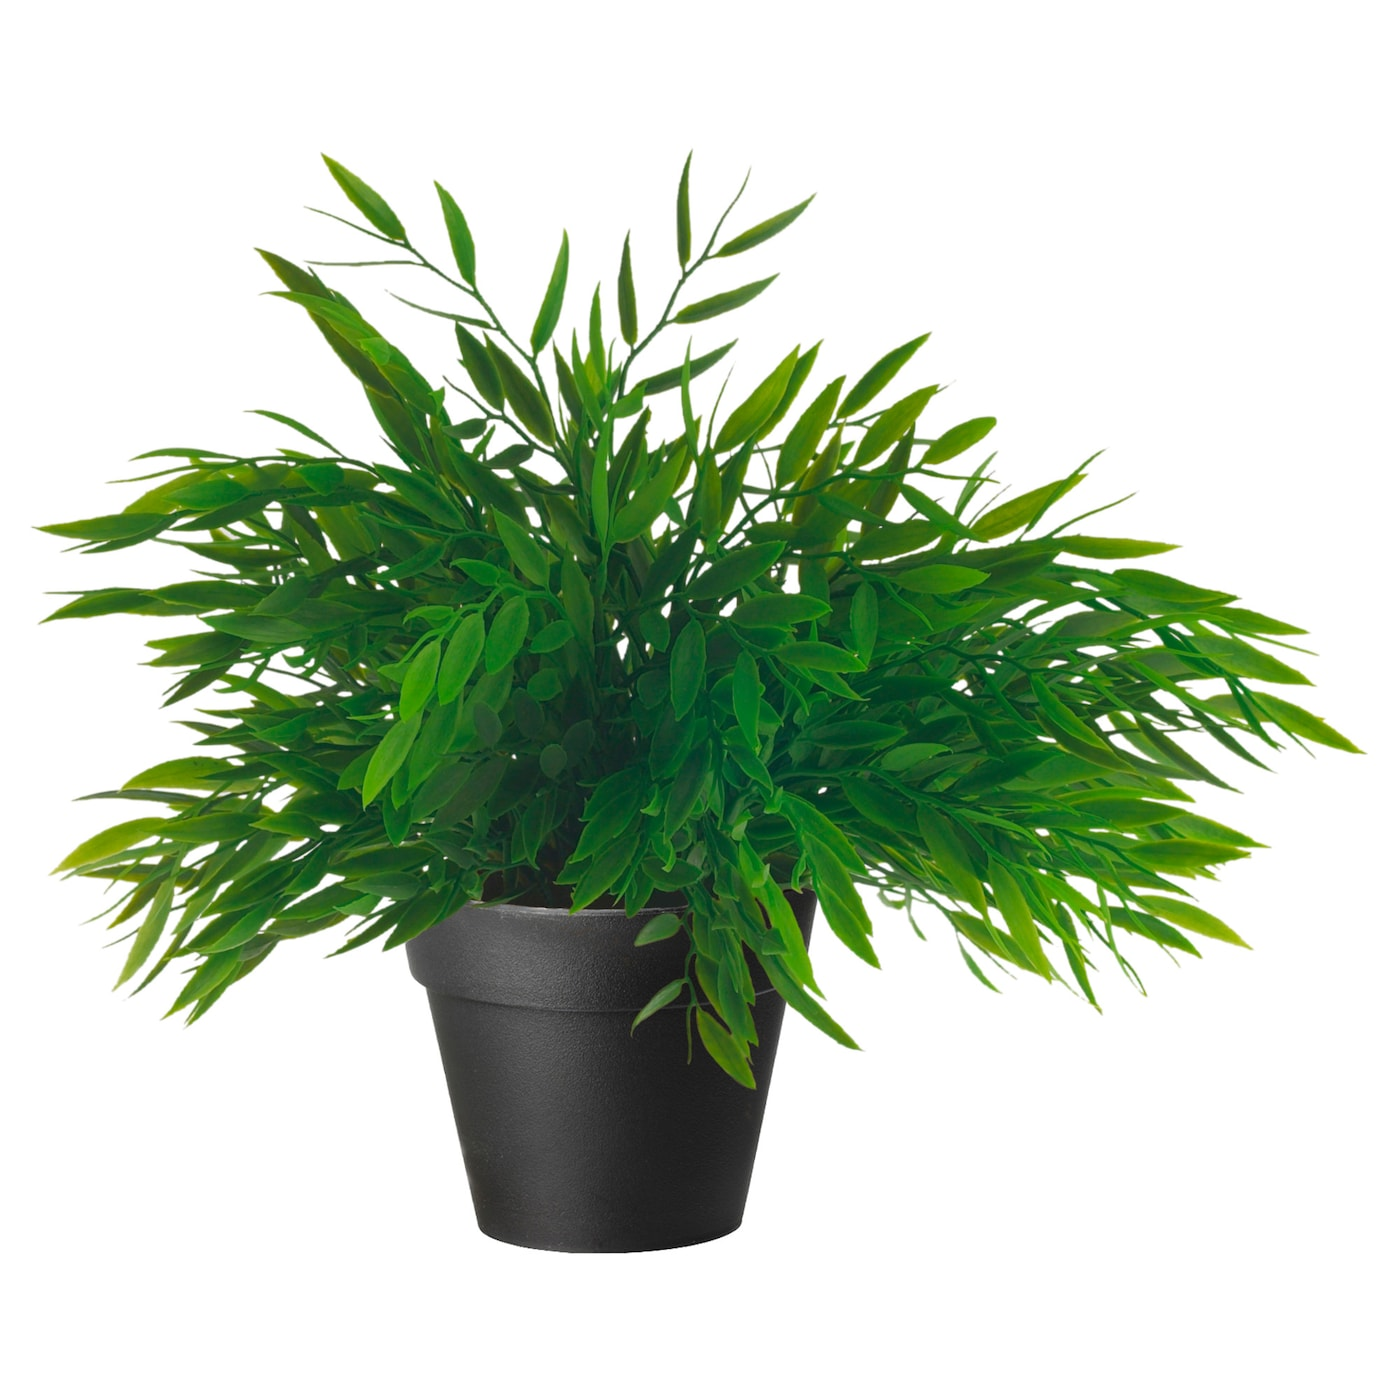 Fejka plante artificielle en pot bambou d 39 int rieur 10 cm for Plante interieur ikea